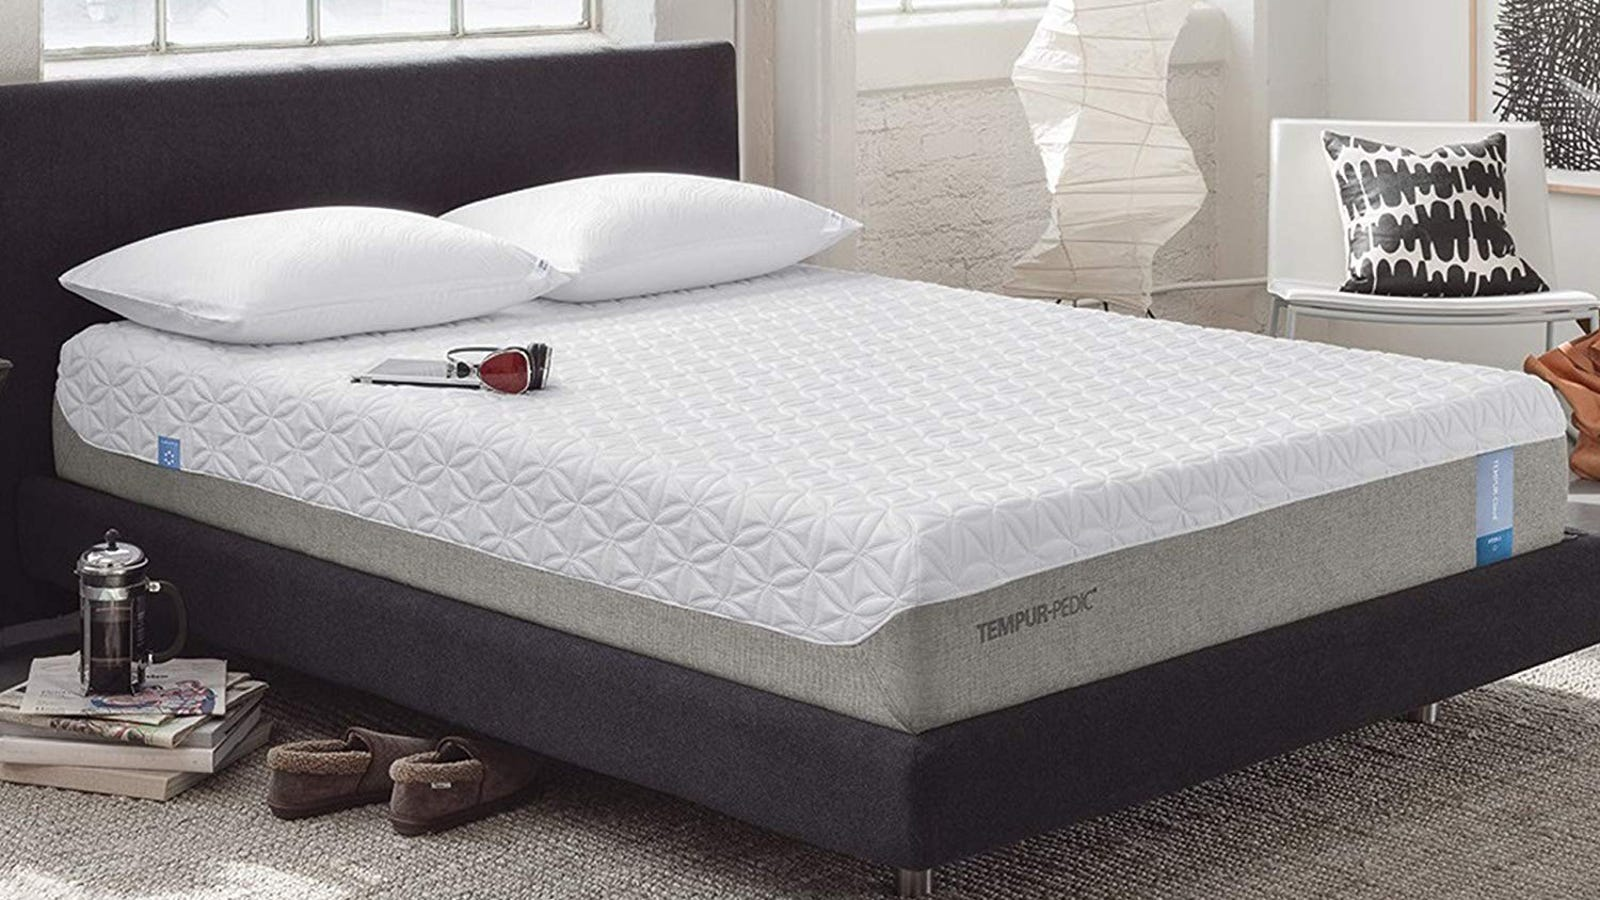 Commit To Memory Foam With This Tempur Cloud Mattress Gold Box